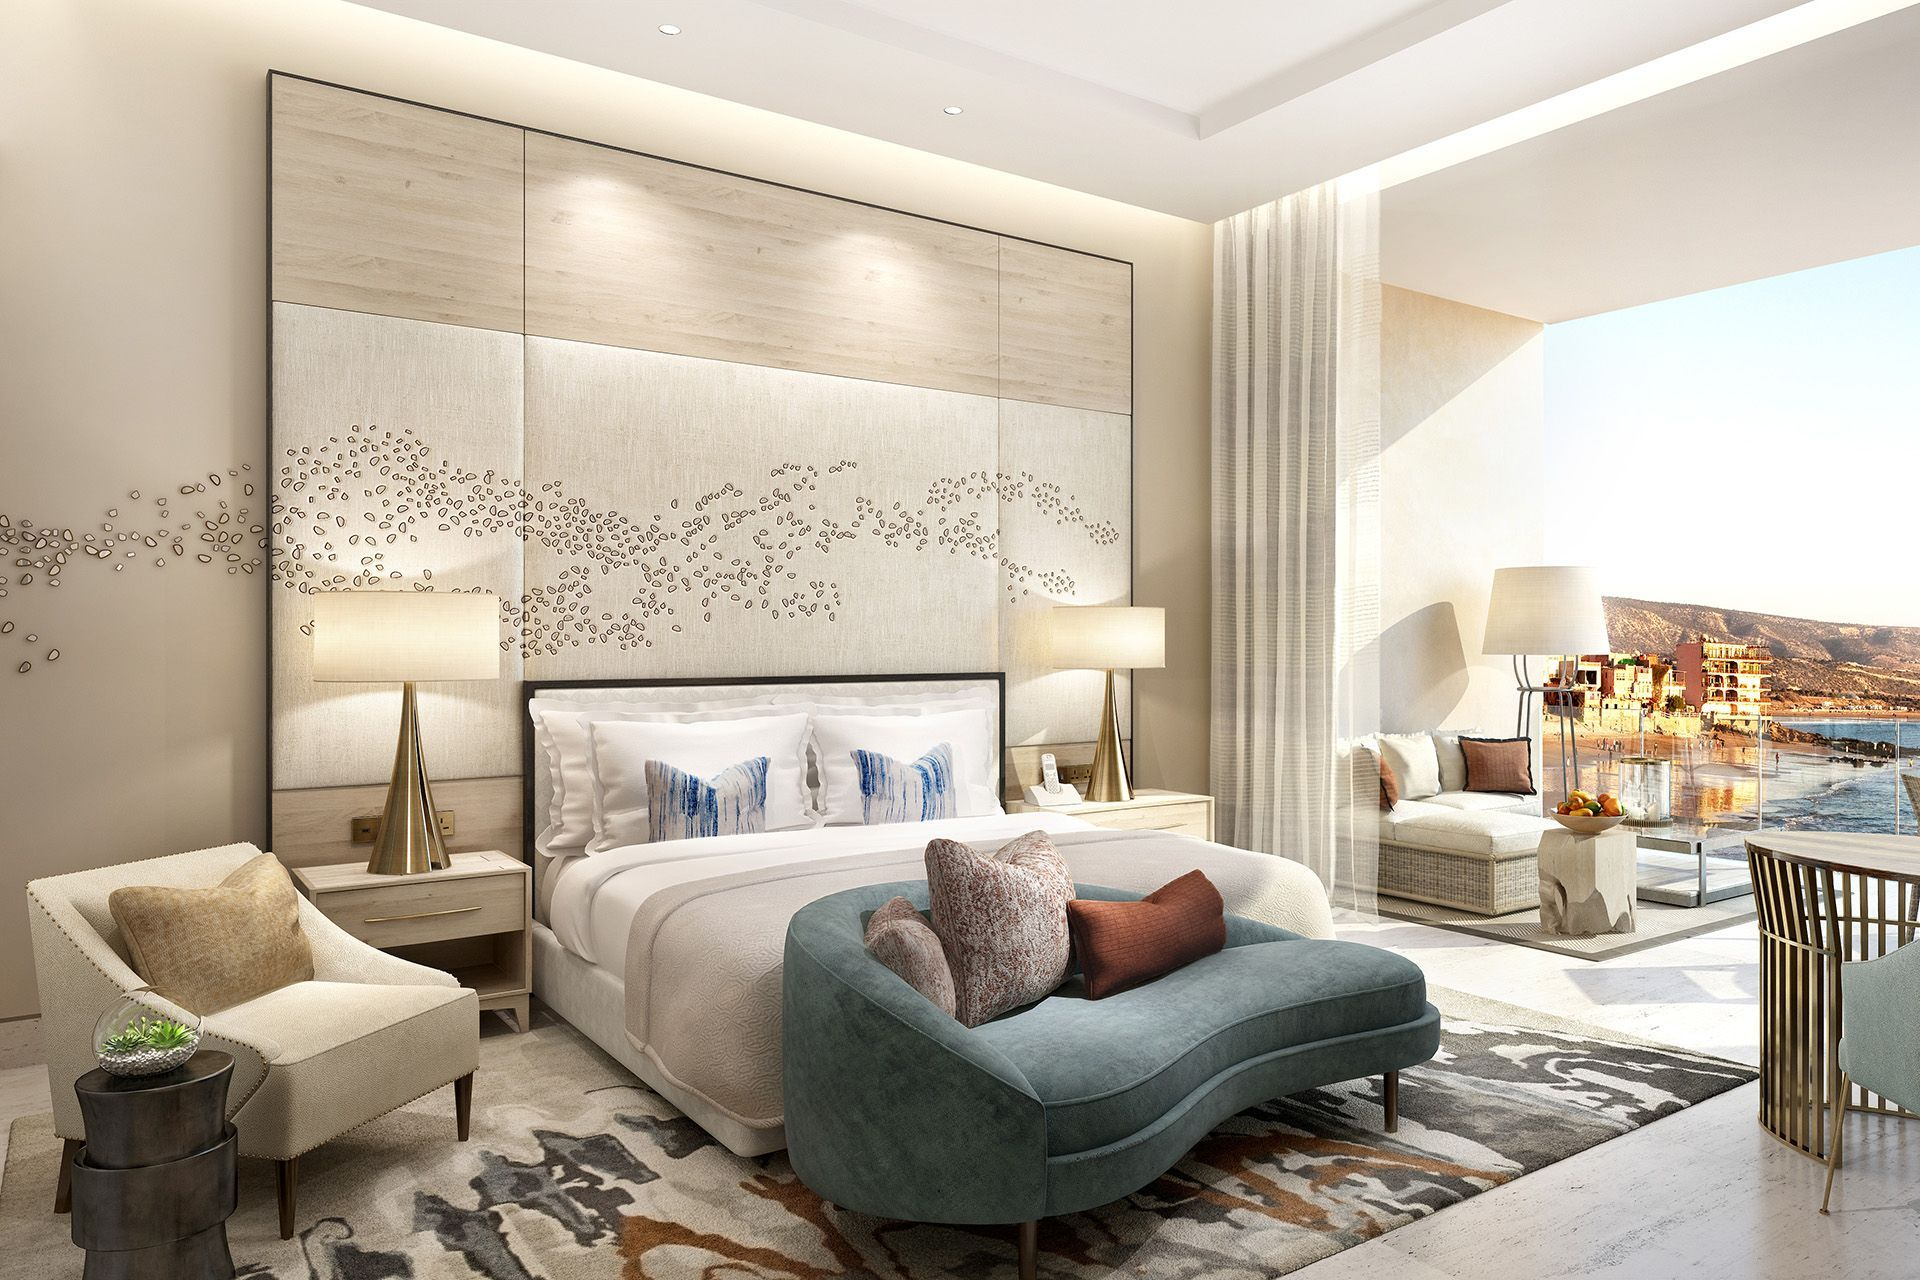 Four seasons taghazout interior designers wimberly for New bedroom decoration